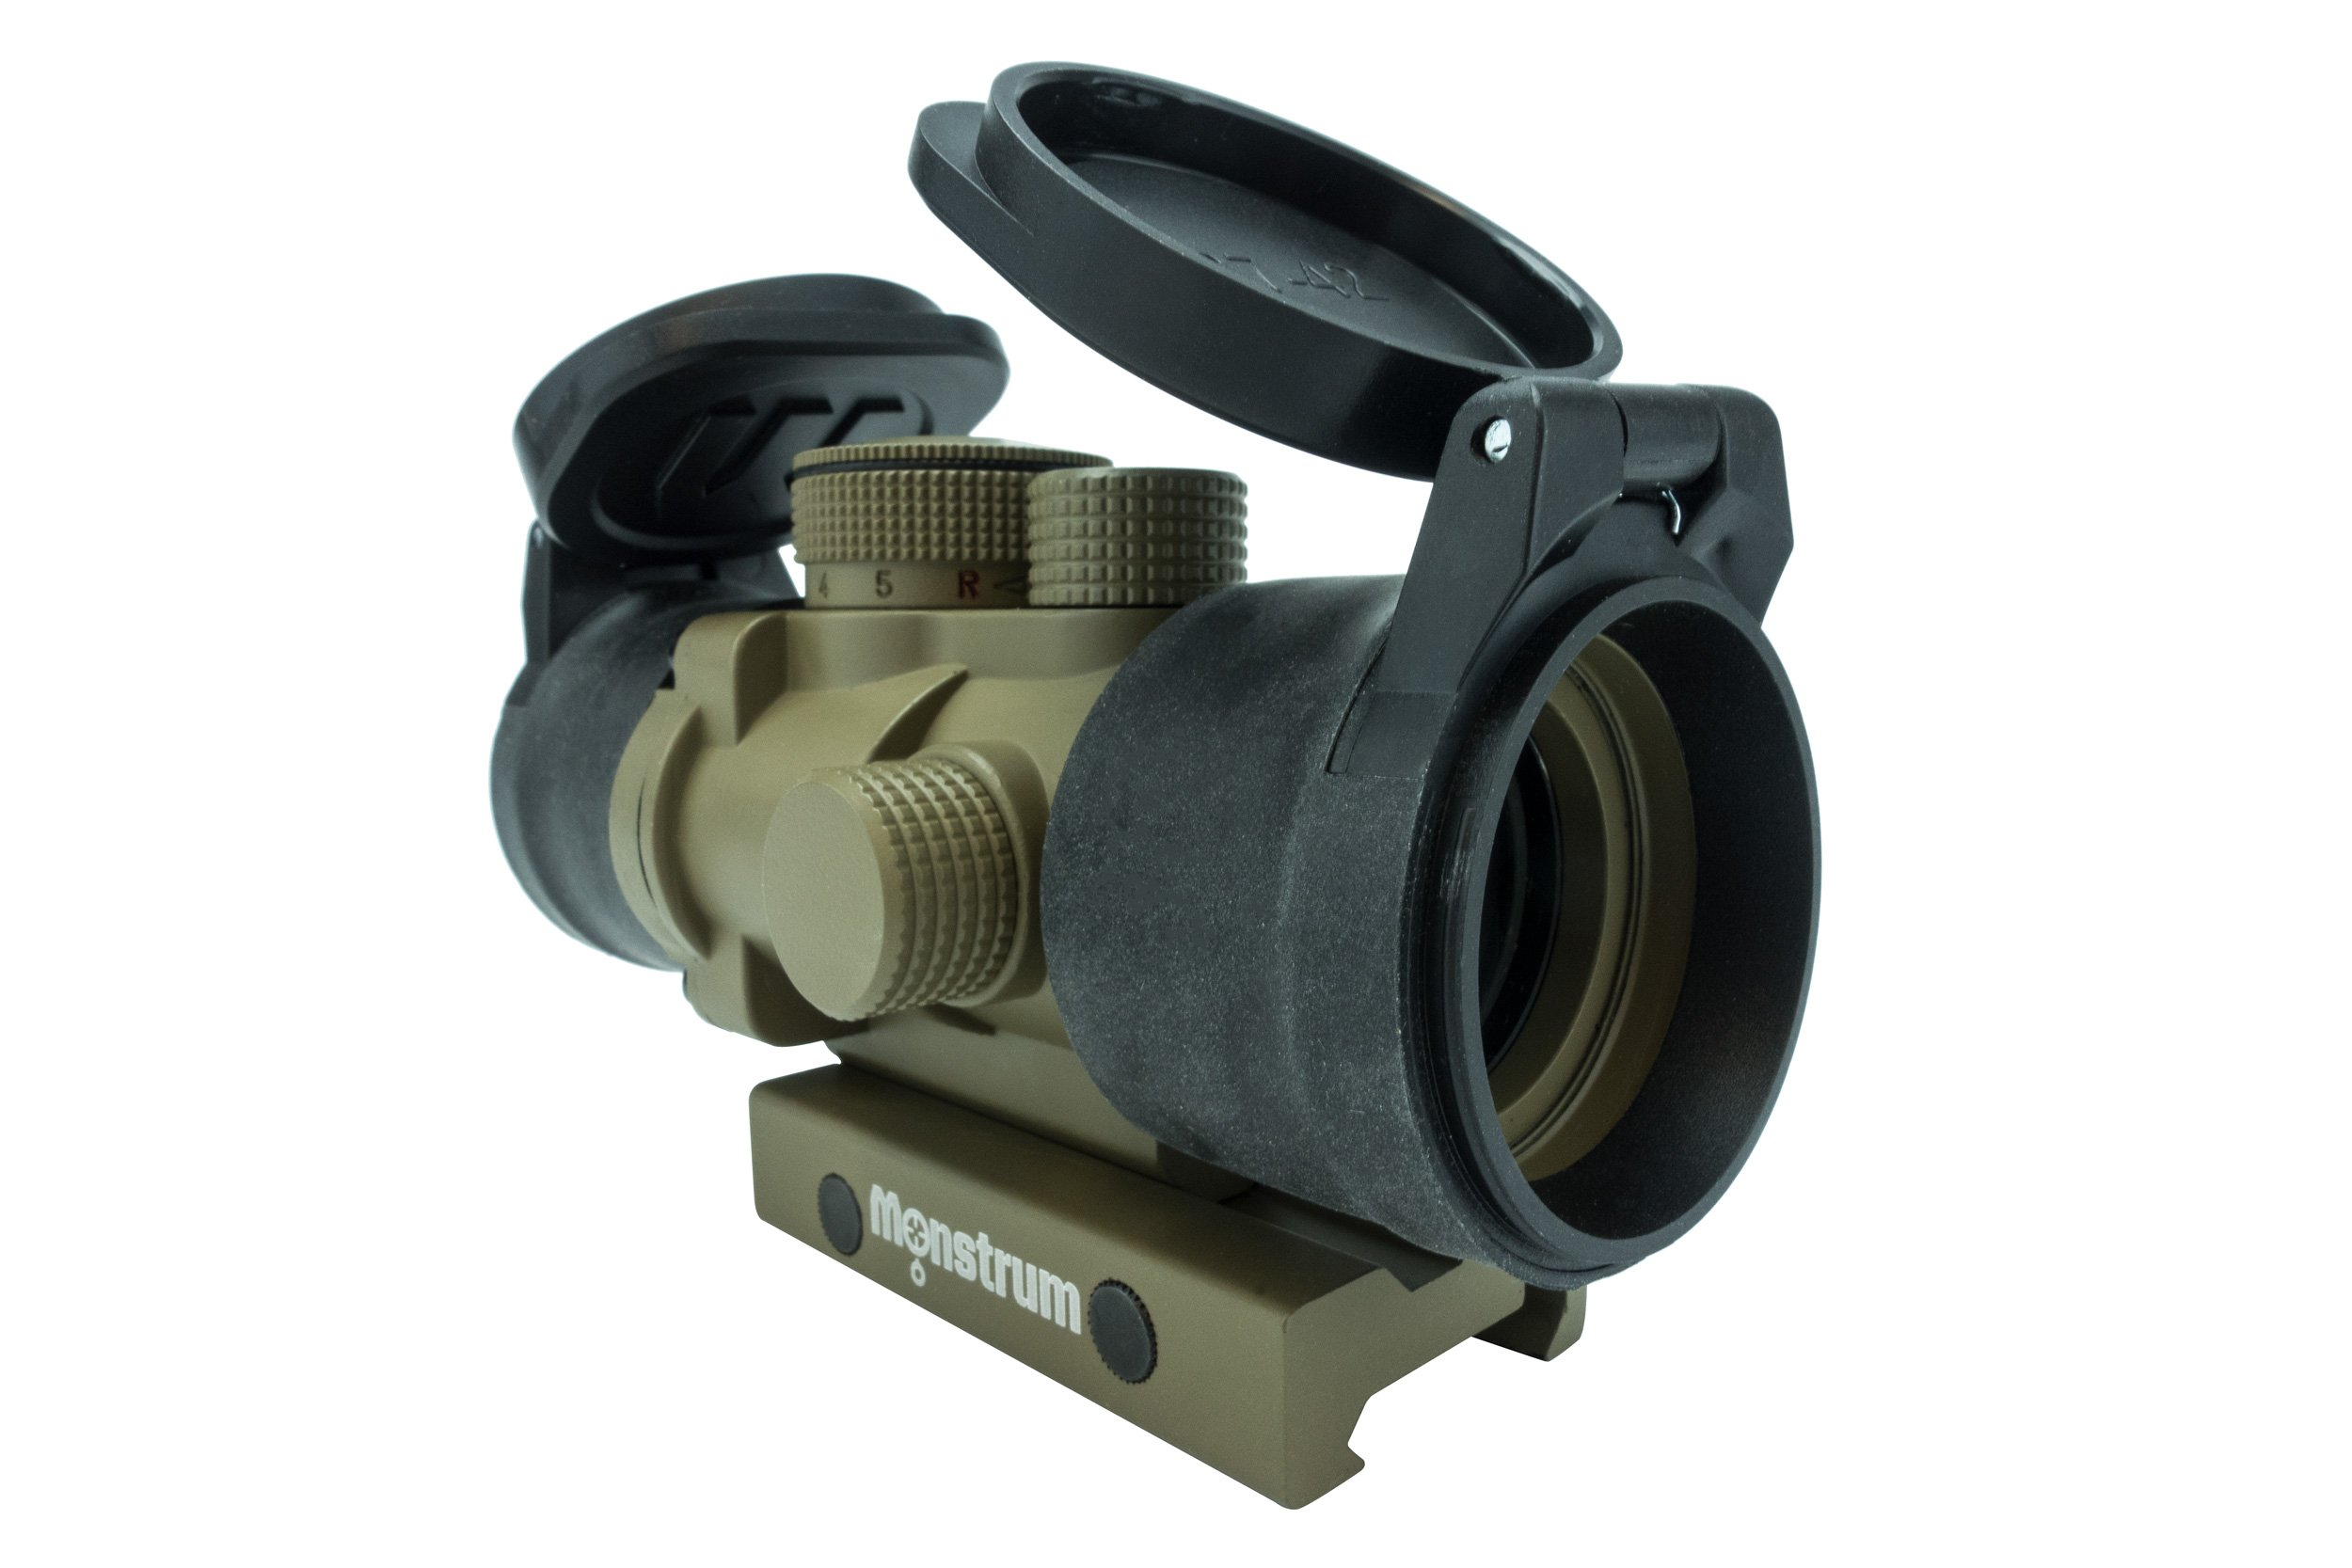 Monstrum Tactical S330P Ultra-Compact 3x Prism Scope (Flat Dark Earth with Flip-Up Lens Covers) by Monstrum Tactical